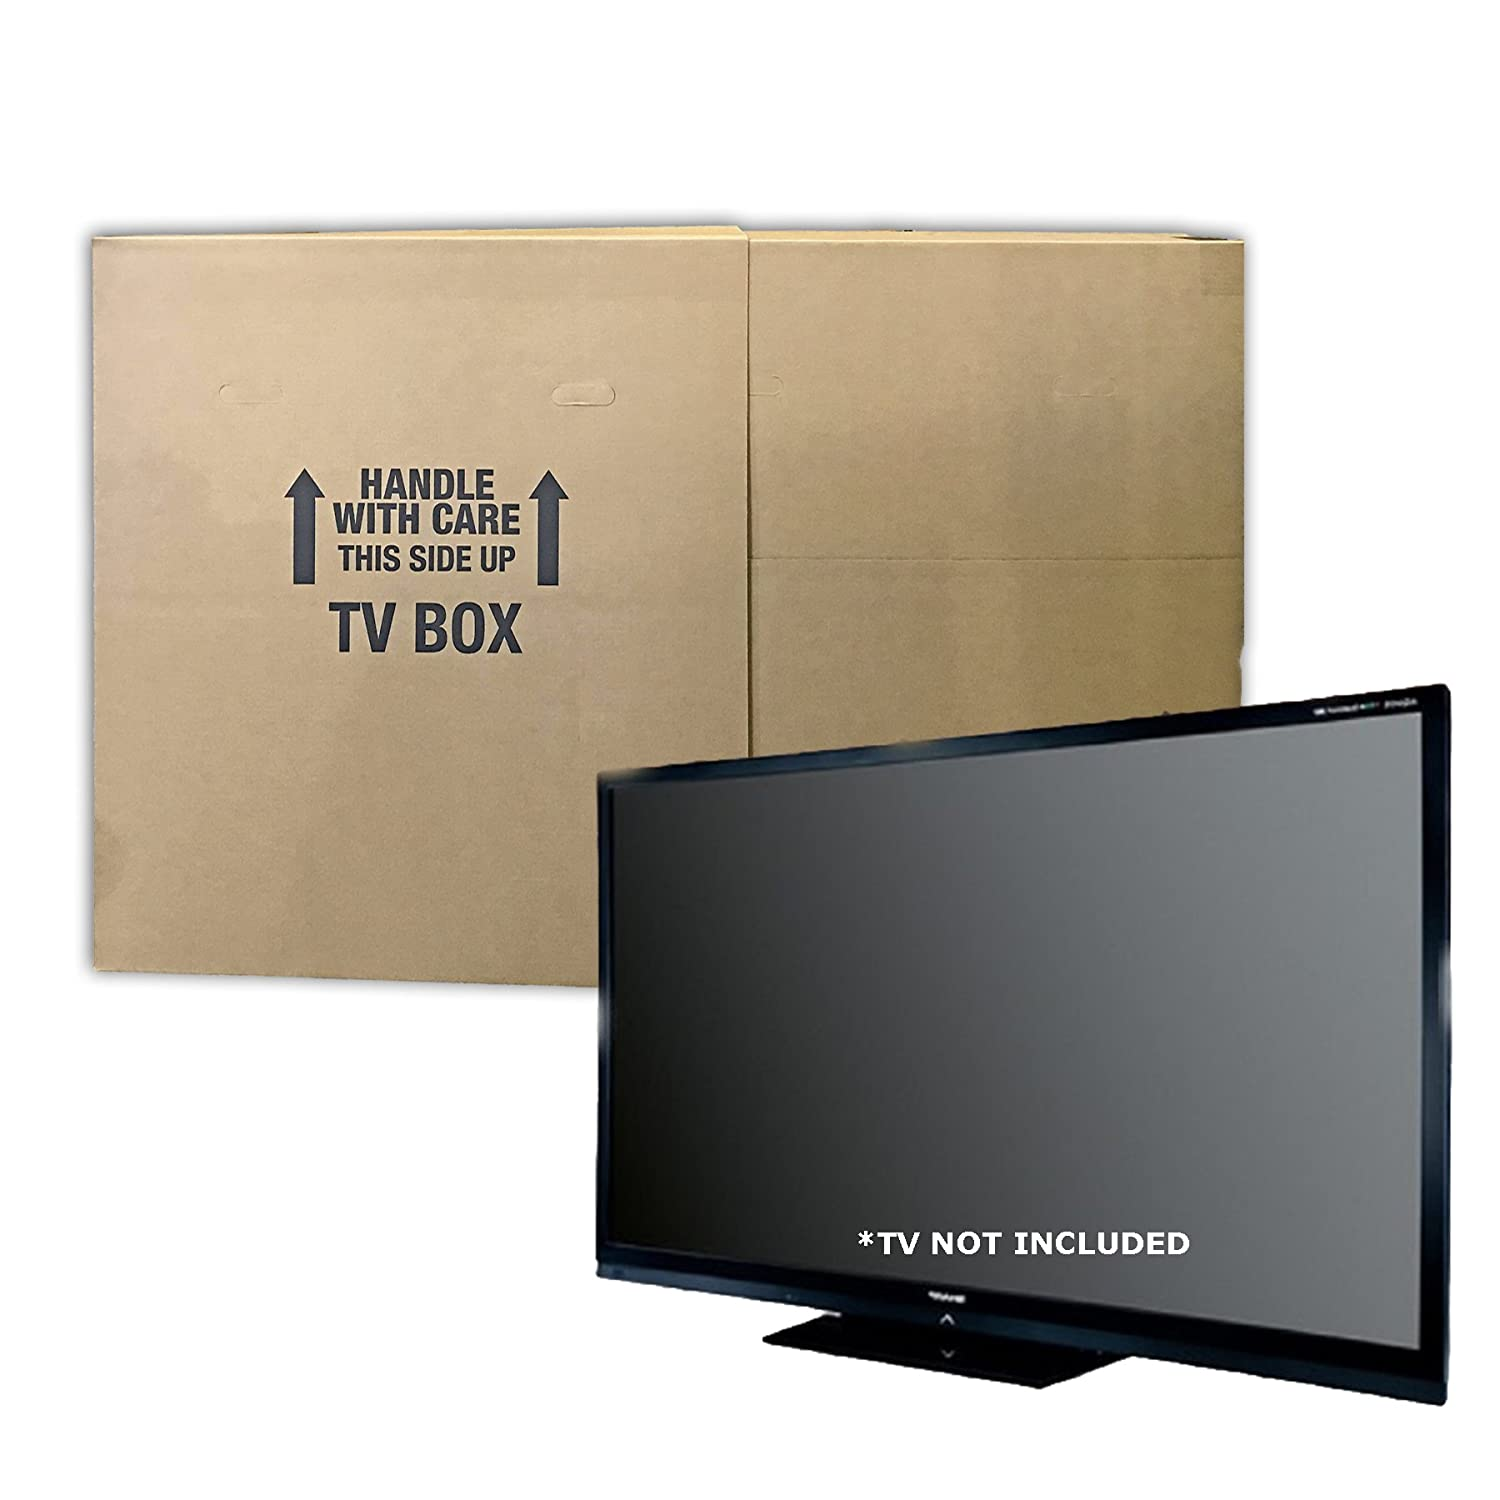 Uboxes TV Moving Box Flat Screen Fits TV's 32' To 70' Adjustable Box LCD, LED, Plasma TVMOVEBOXES2